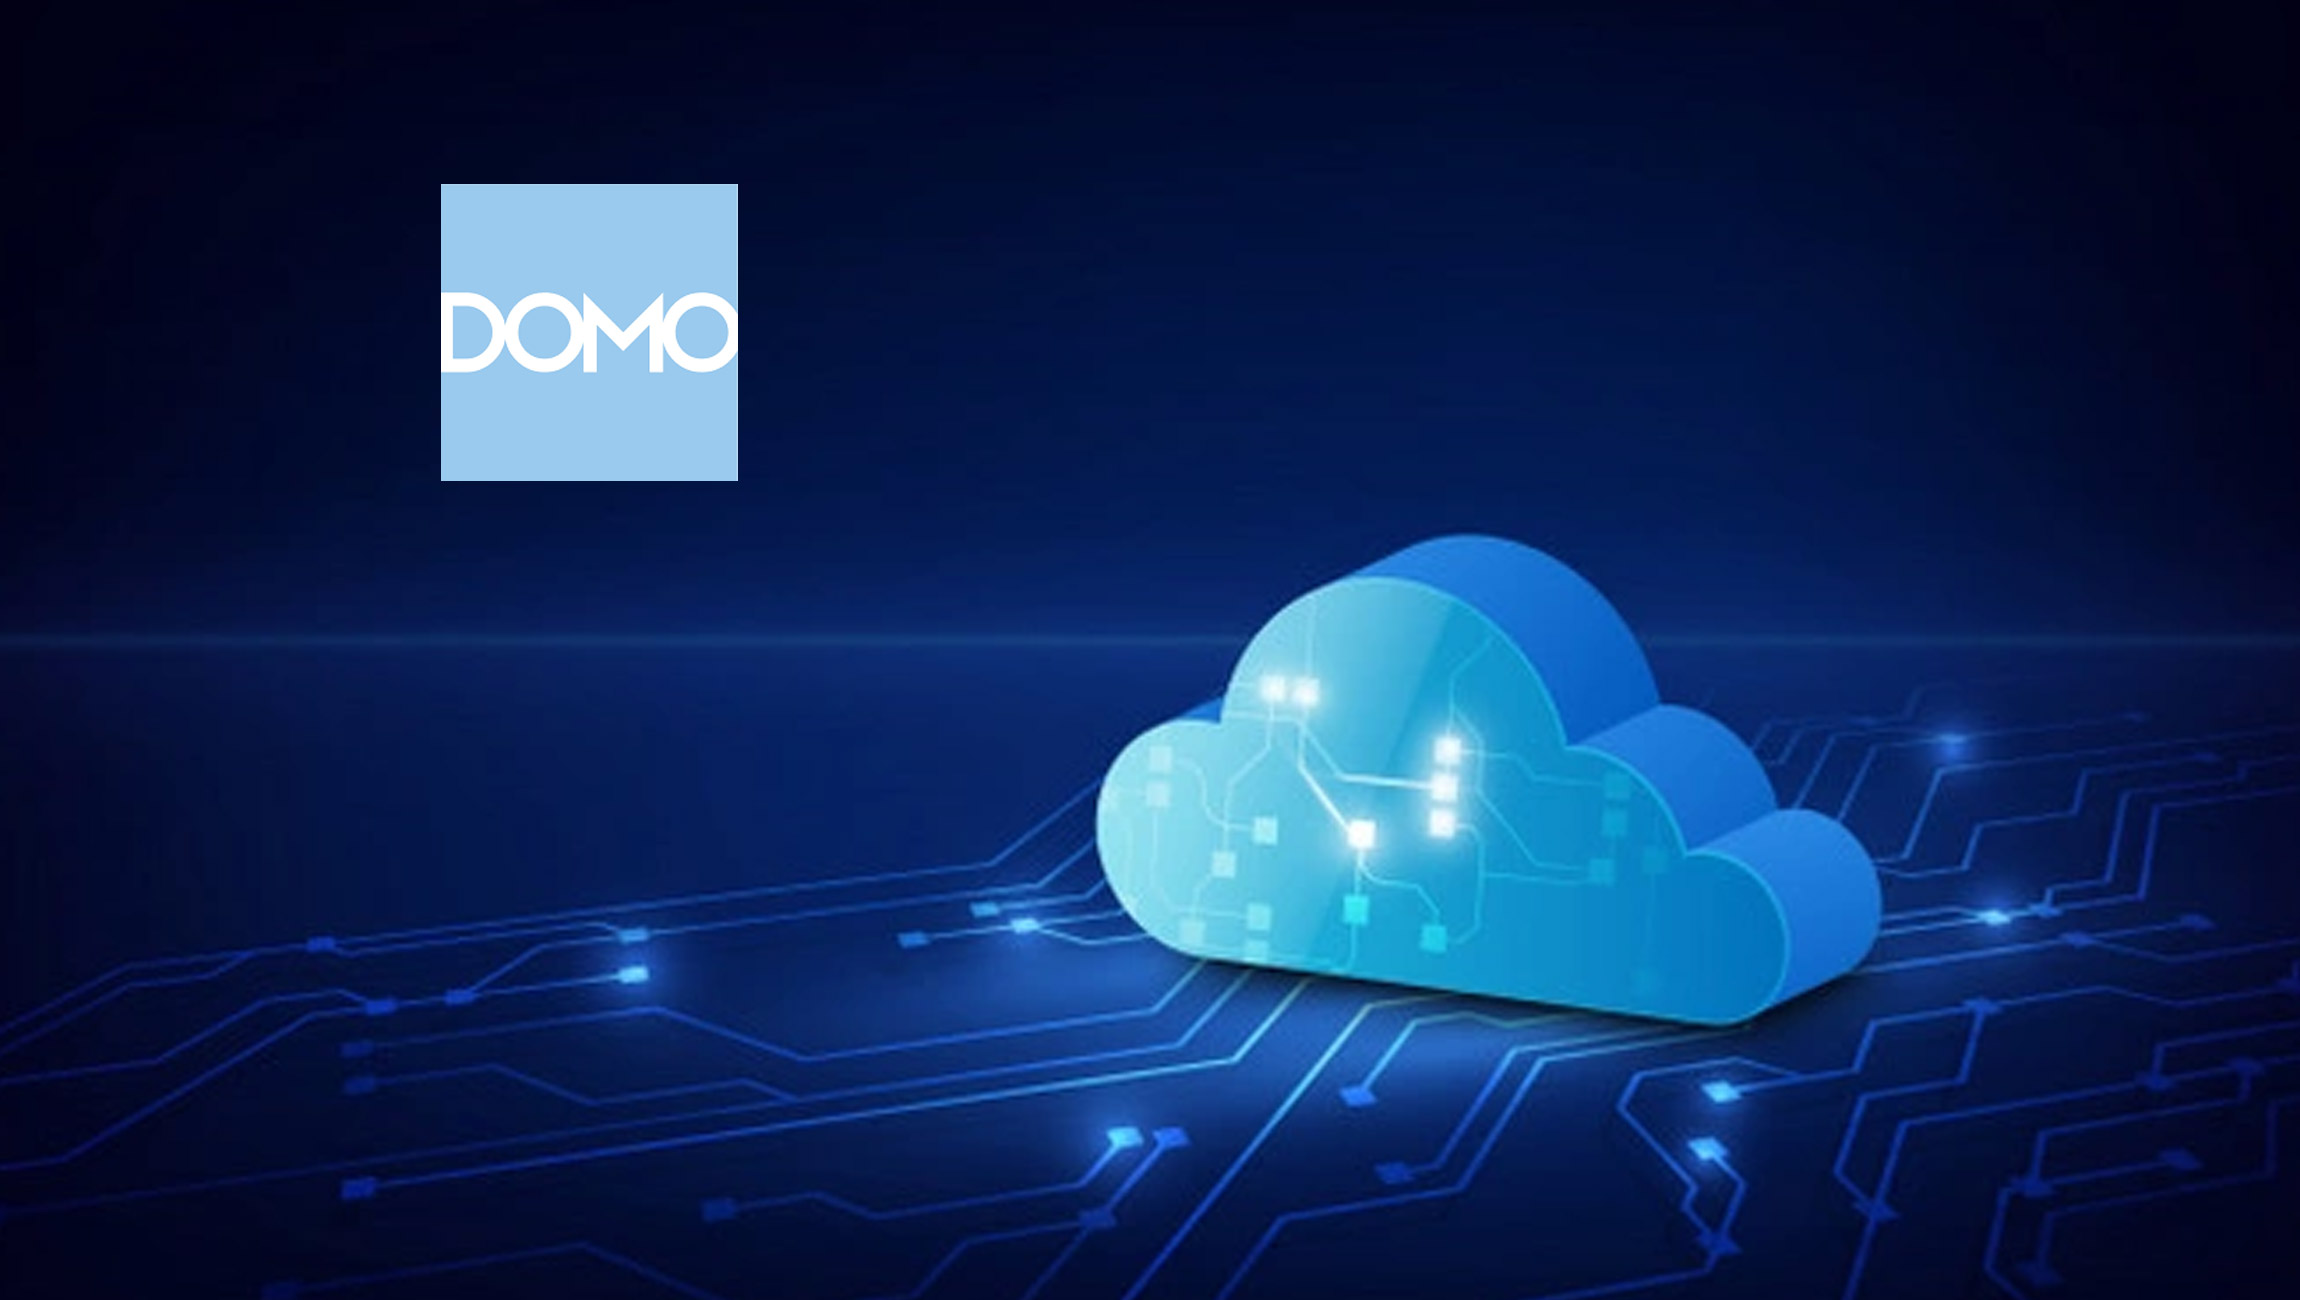 Domo Introduces Industry's First Multi-Cloud Data Offering for Modern BI